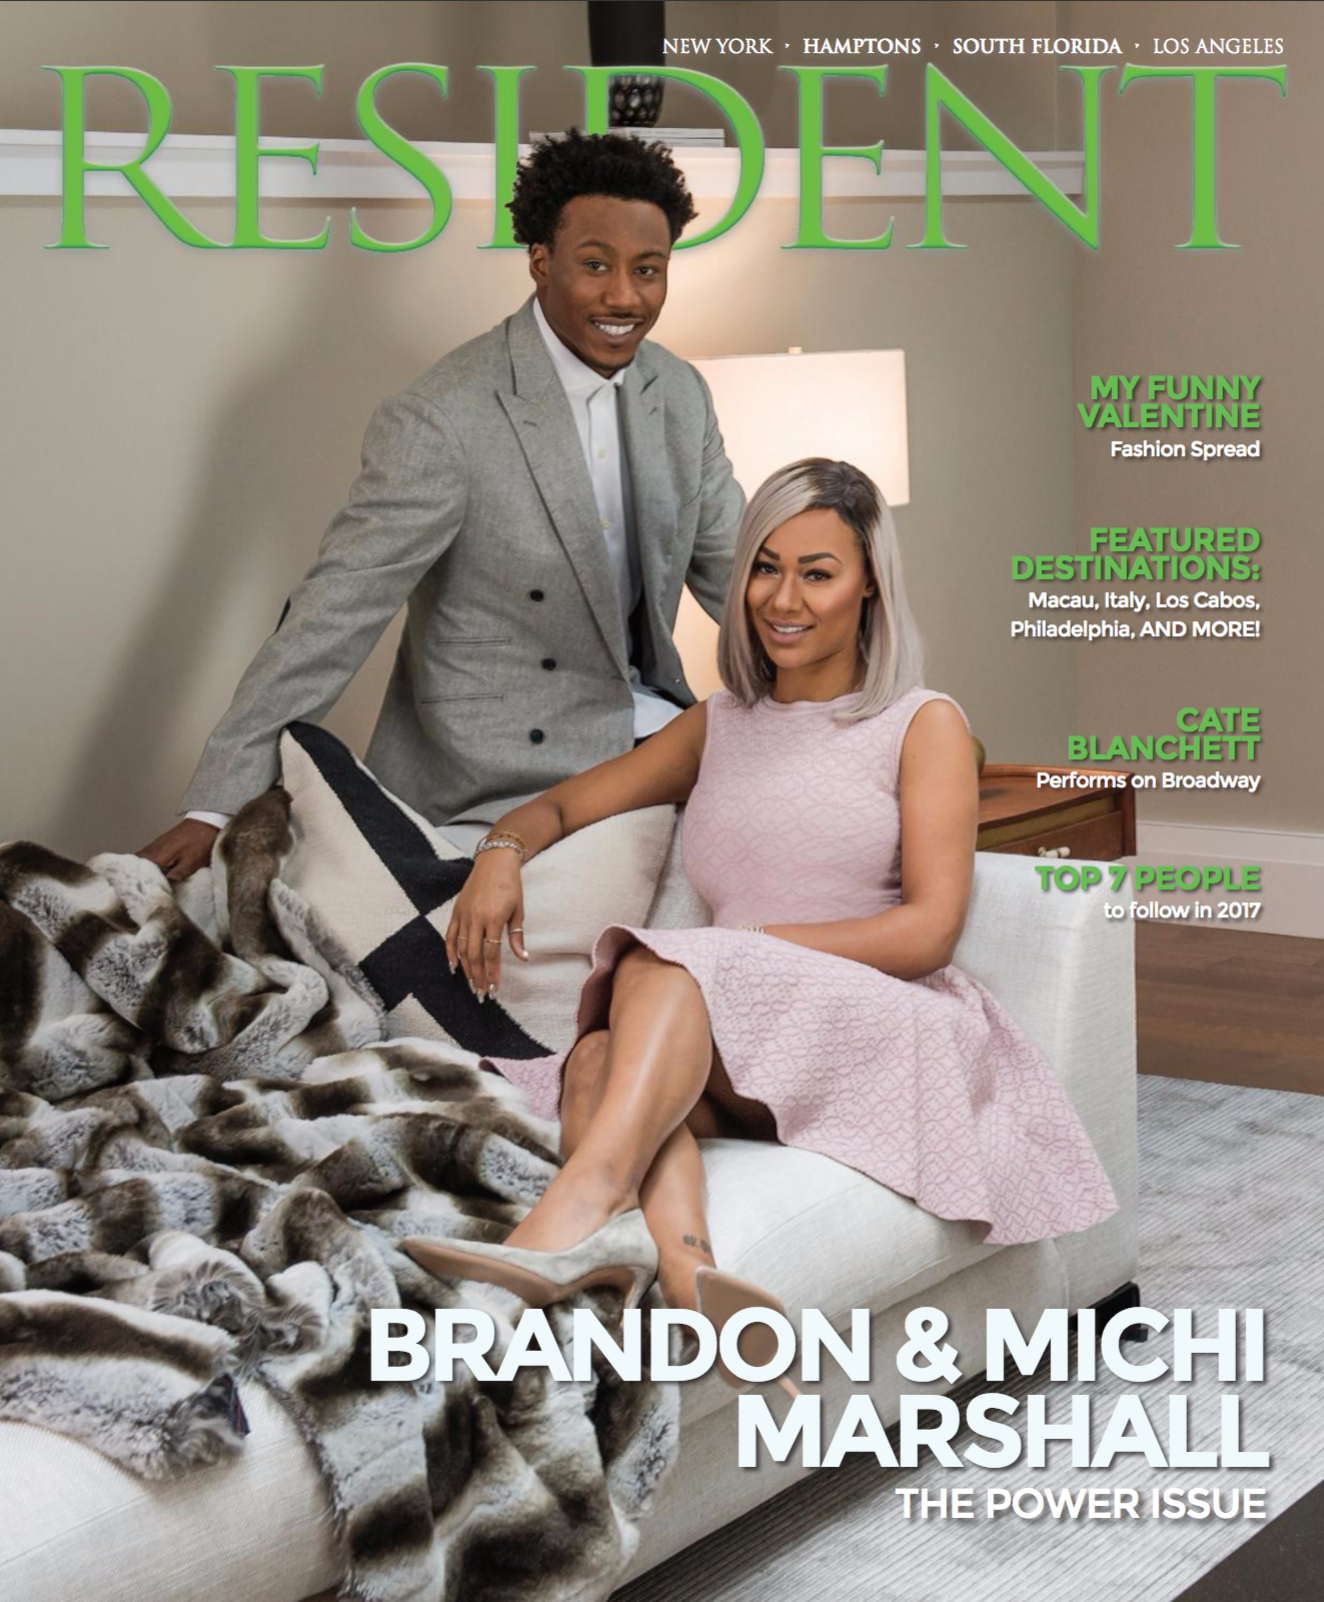 Brandon & Michi Marshall by photographer Andrew Werner for Resident Magazine - Cover - Feb 2017.png